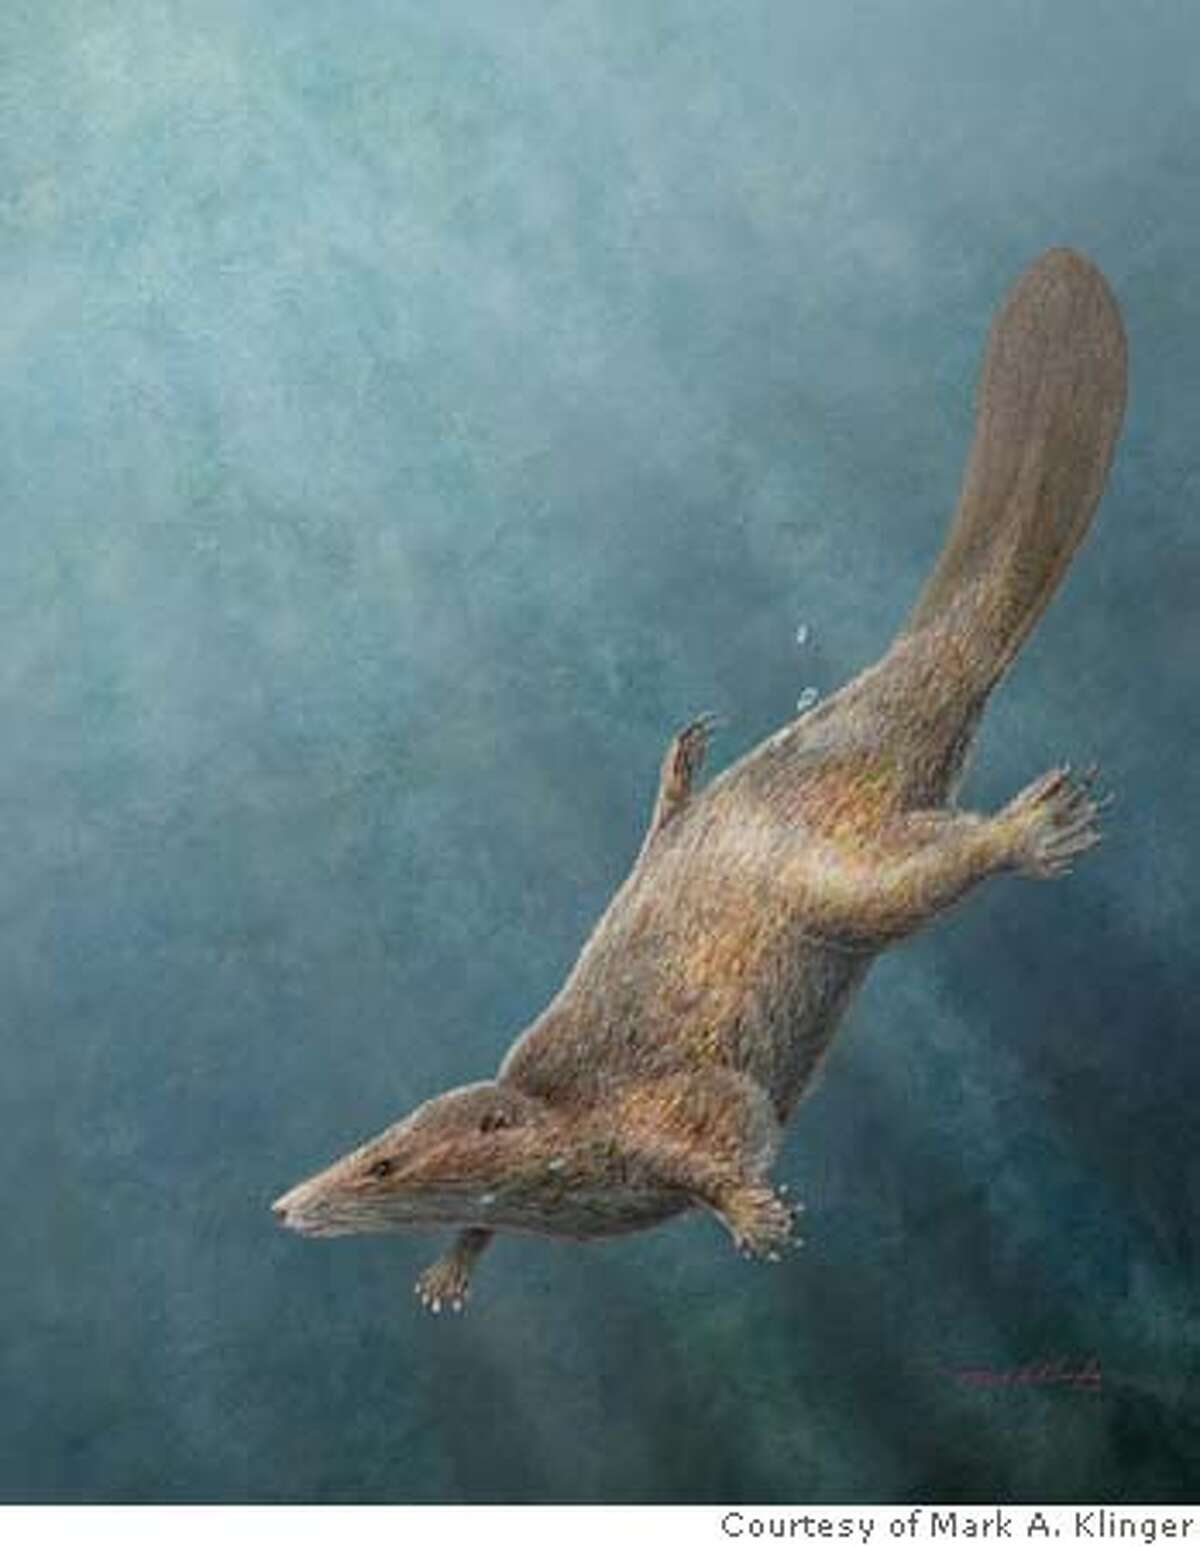 """Castorcauda lustrasimilis is a docodont mammaliaform from the Middle Jurrassic (~165 million years old).Characterized by an evolutionary convergence of its """"beaver-like"""" tail, and some dental feautres for feeding small fish and invertebrates convergent to that of an otter. This artistic reconstruction of Castorcauda lustrasimilis shows it diving into water. [Image courtesy of Mark A. Klinger/CMNH]"""